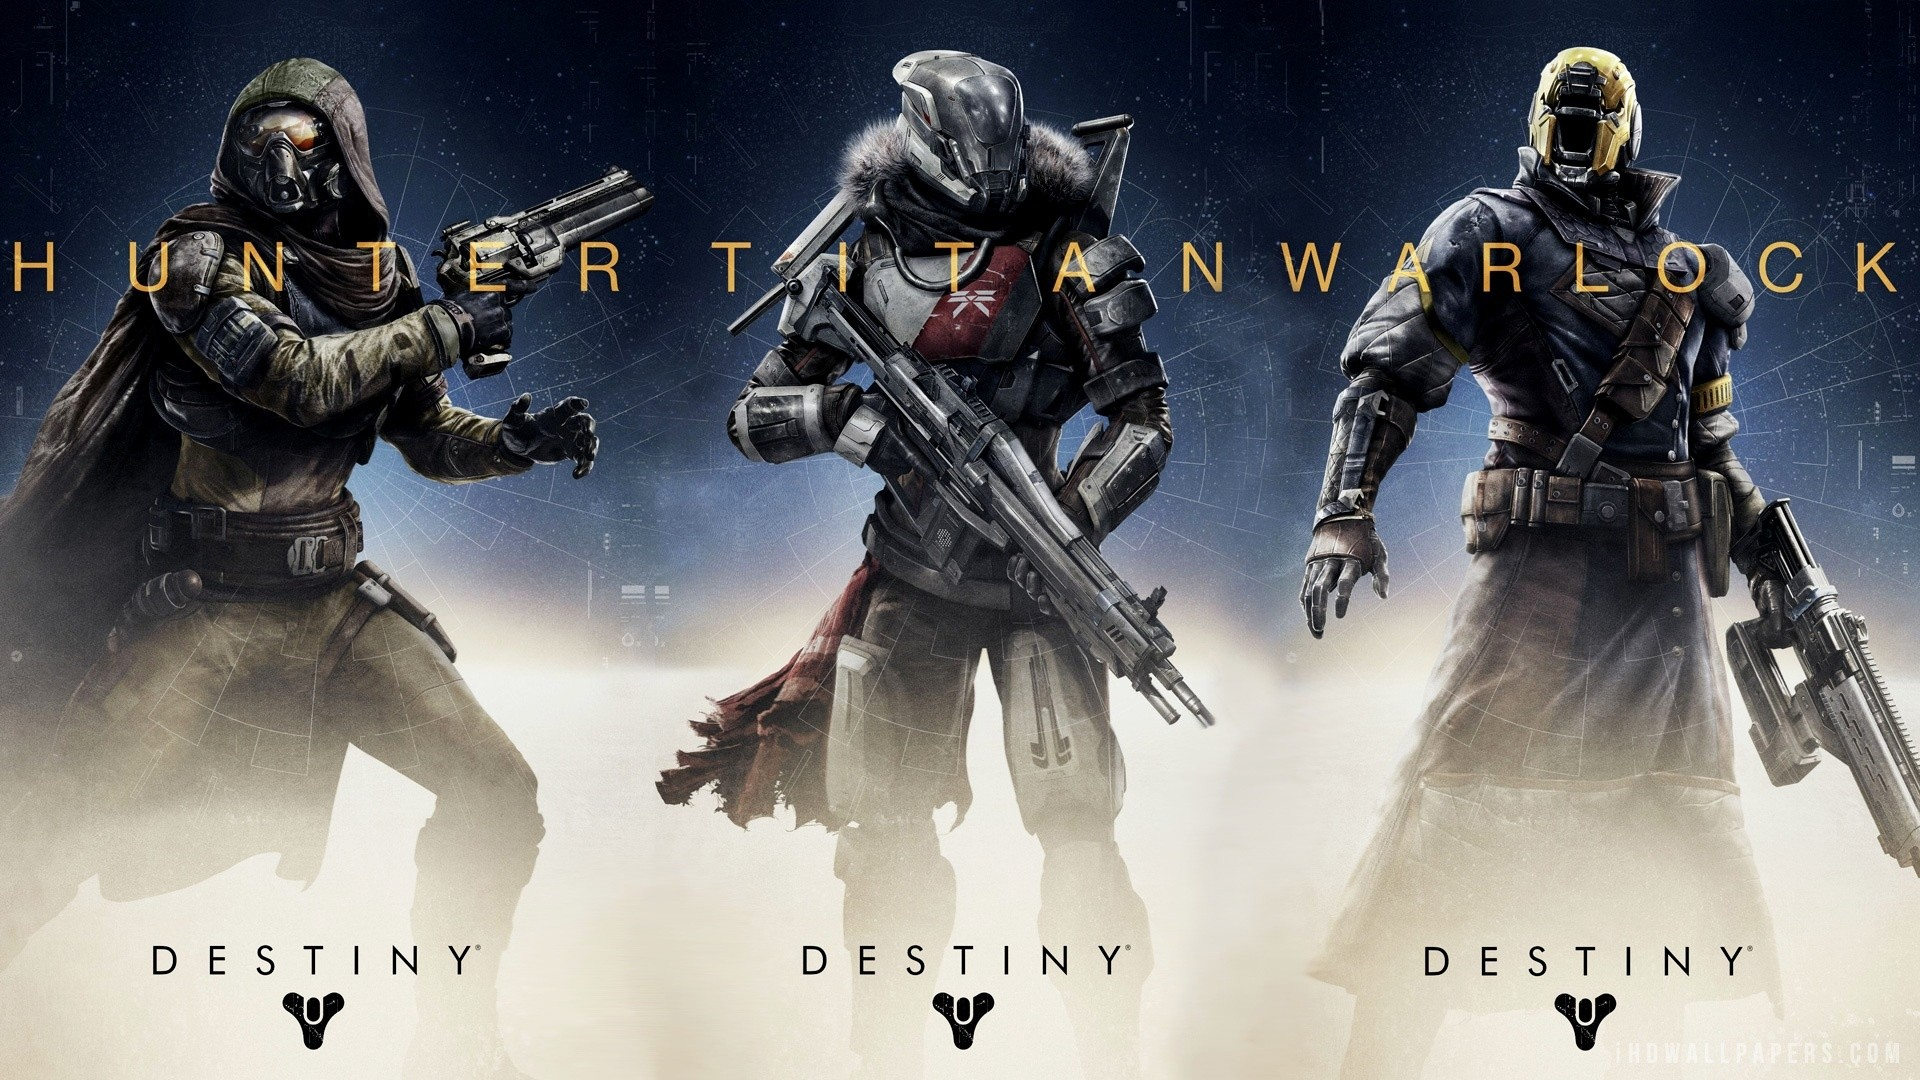 1920x1080 Destiny Game Wallpapers HD Wallpapers 1920×1080 Destiny Wallpaper Hd (59  Wallpapers) |